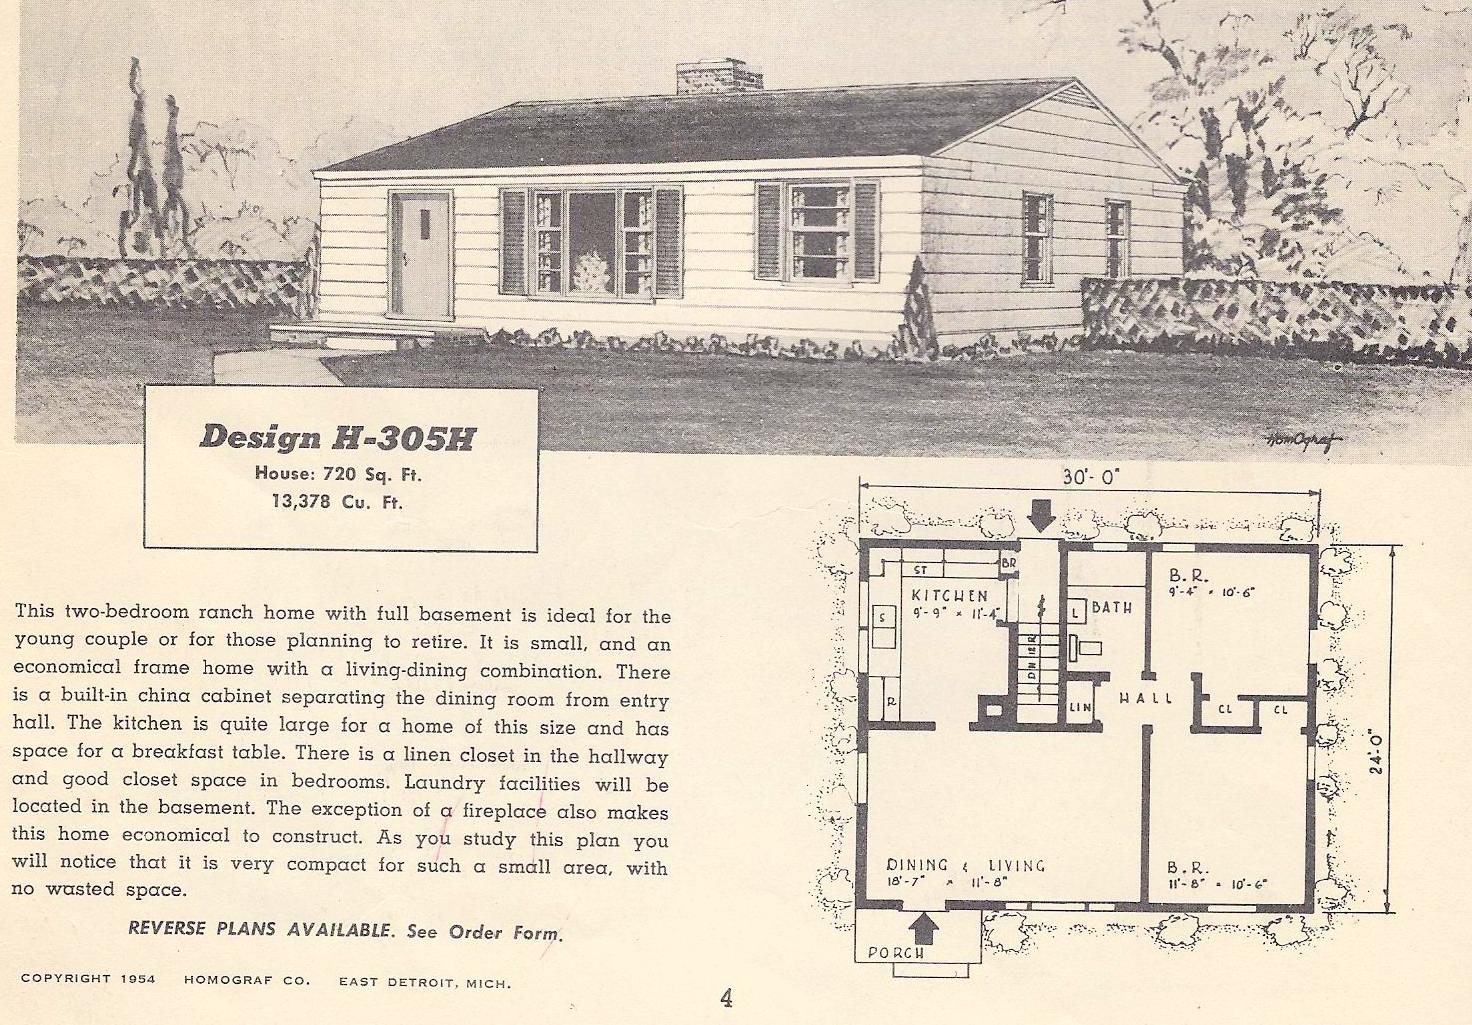 Vintage house plans 305h antique alter ego for Vintage ranch house plans